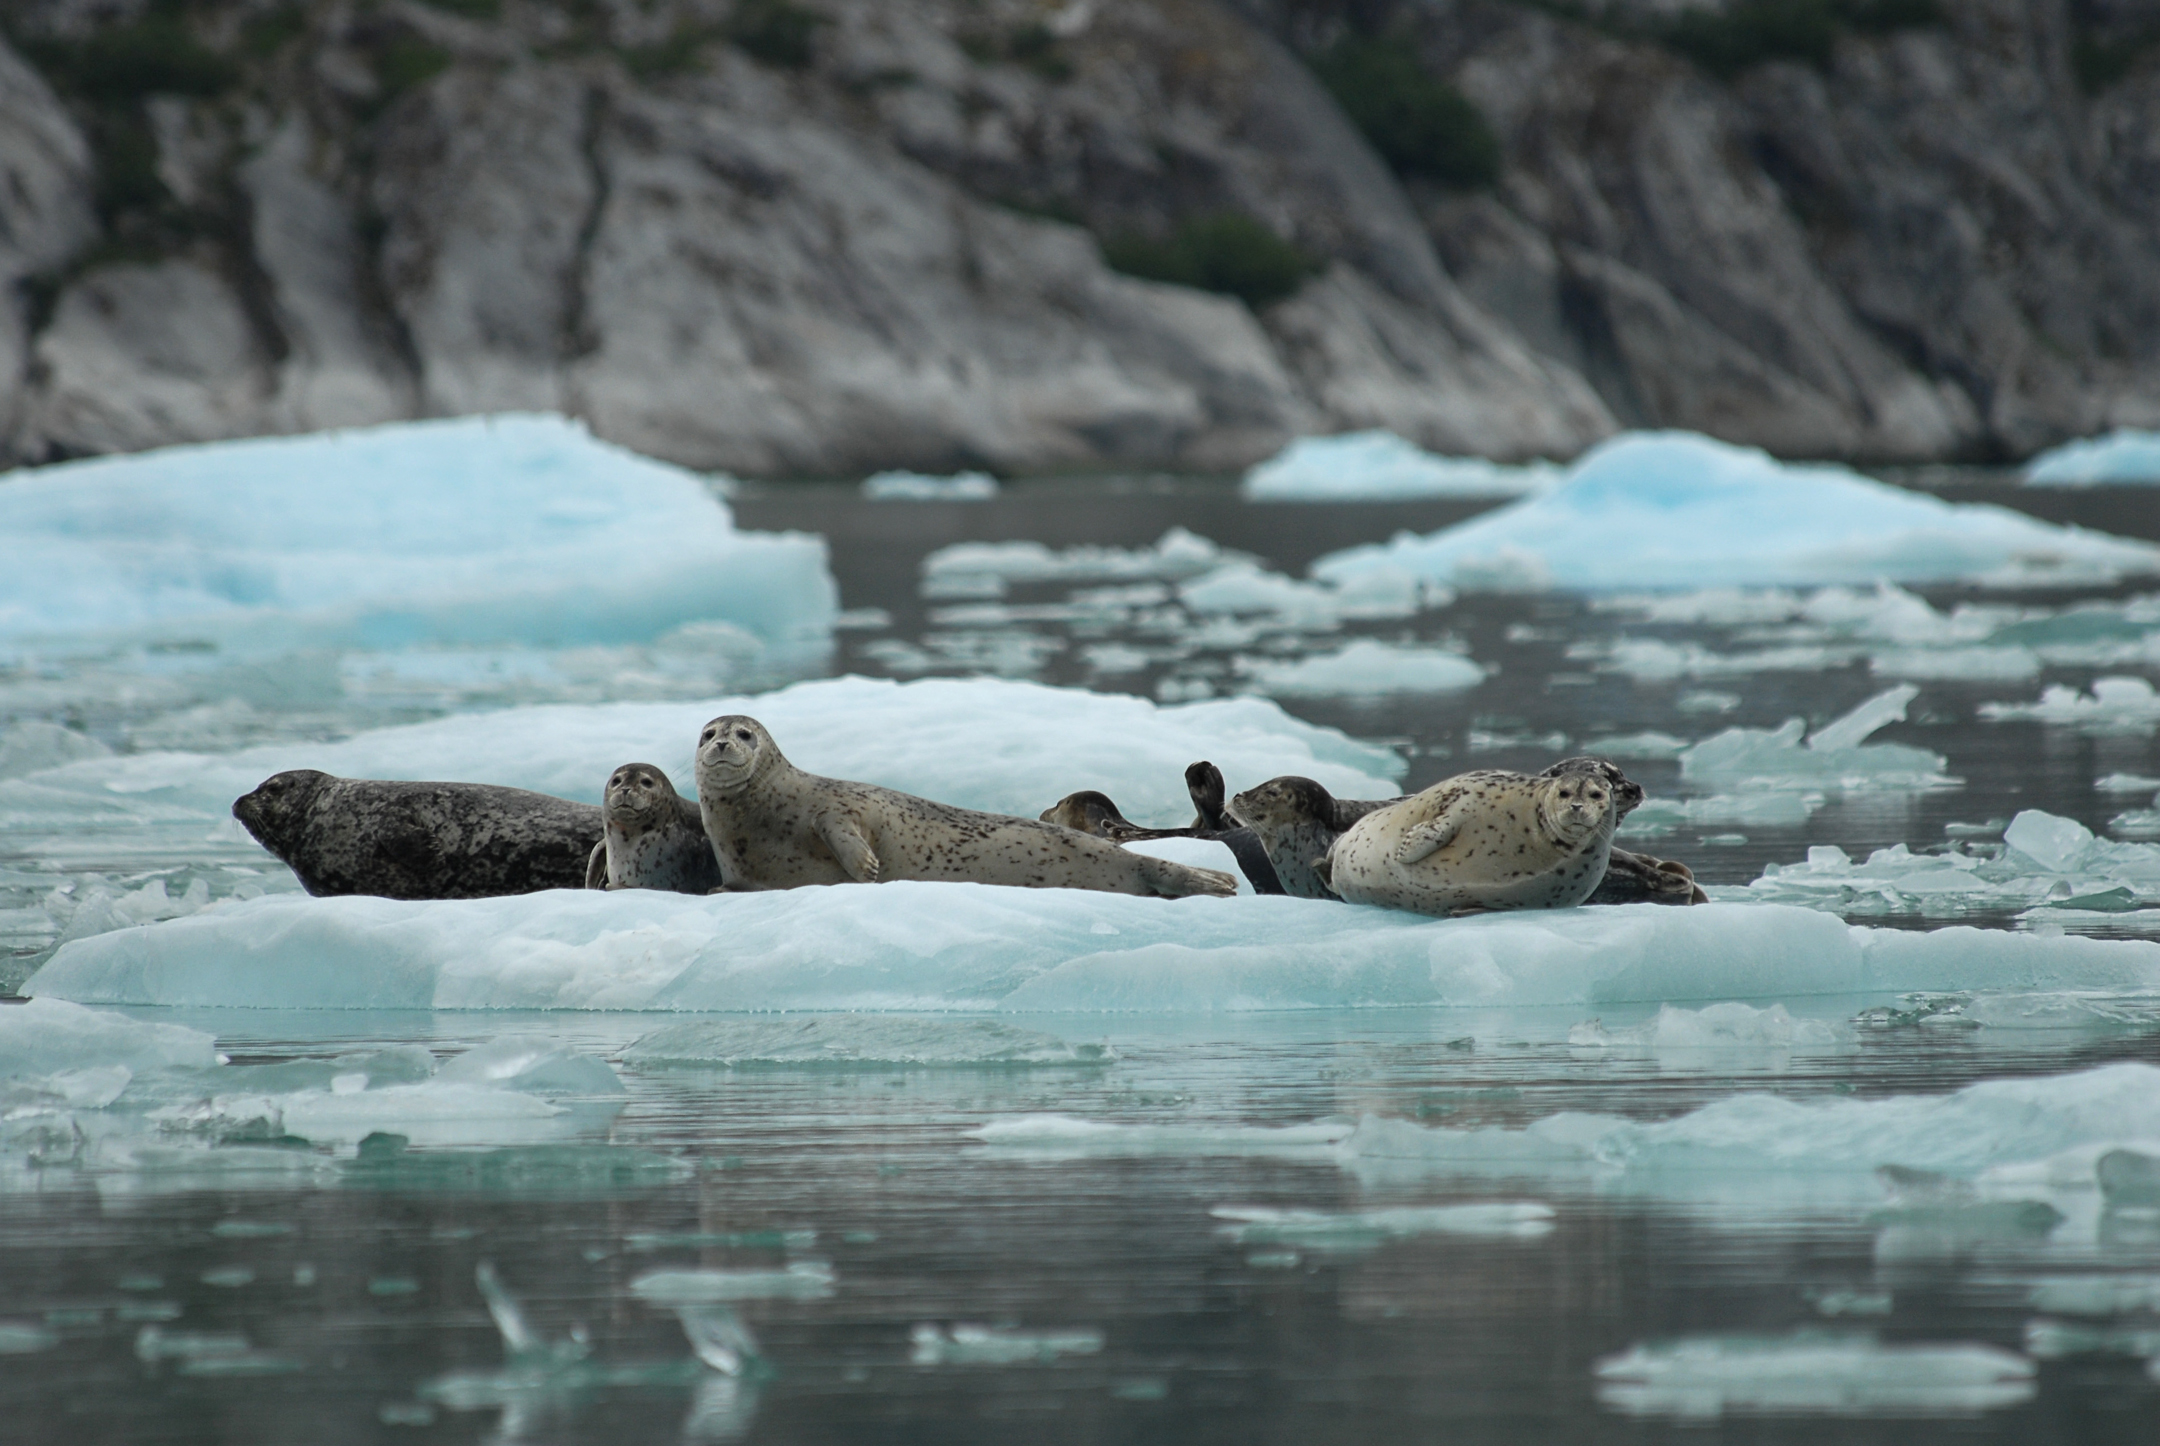 Harbor seals rest on ice near South Sawyer Glacier in 2007. (Photo courtesy NOAA's Alaska Fisheries Science Center)